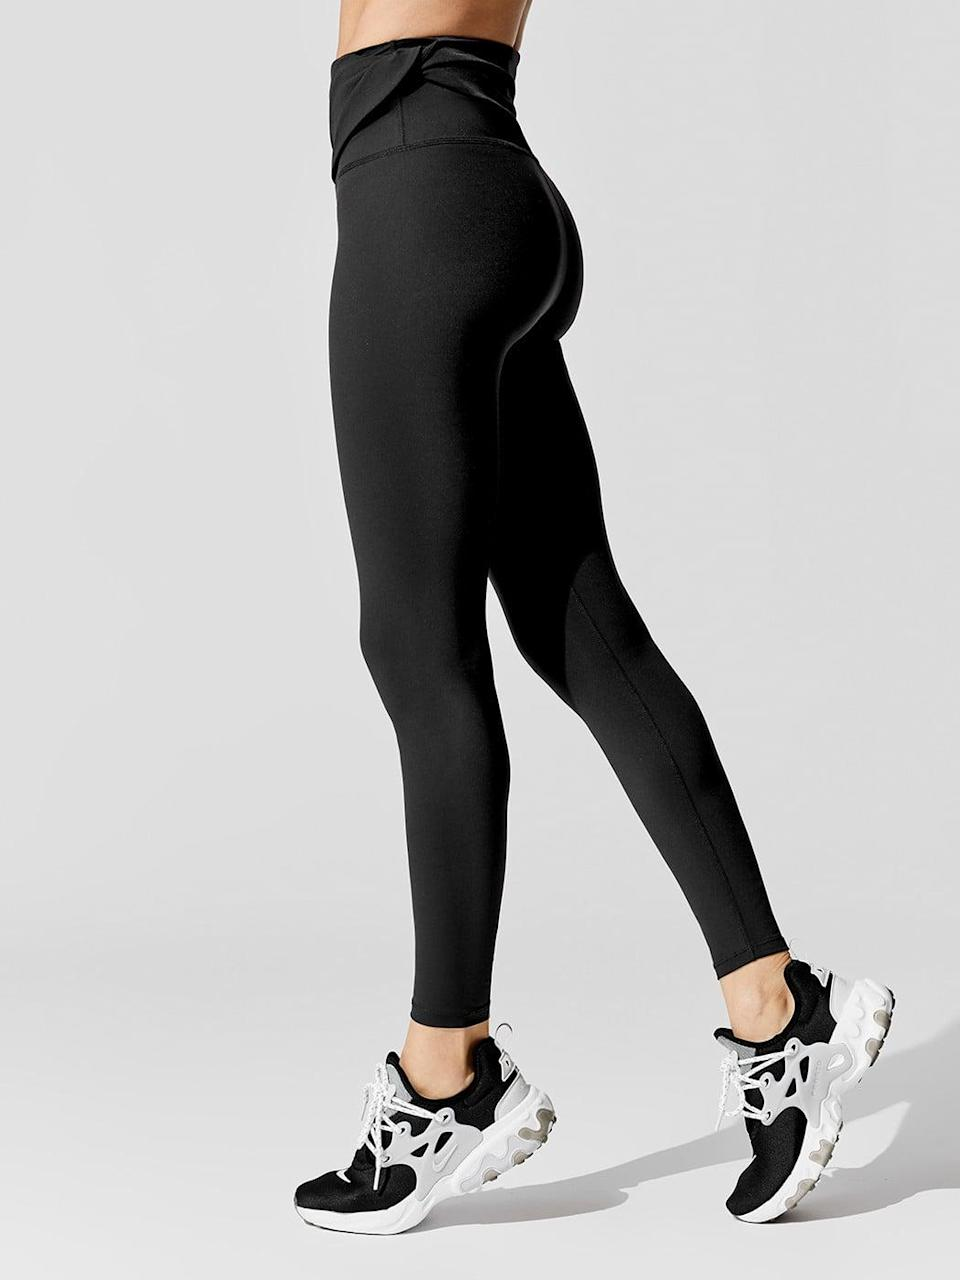 "<p><a href=""https://www.popsugar.com/buy/Carbon38-Side-Twist-High-Rise-Full-Length-Leggings-587700?p_name=Carbon38%20Side%20Twist%20High%20Rise%20Full%20Length%20Leggings&retailer=carbon38.com&pid=587700&price=71&evar1=fit%3Aus&evar9=47603352&evar98=https%3A%2F%2Fwww.popsugar.com%2Fphoto-gallery%2F47603352%2Fimage%2F47603359%2FCarbon38-Side-Twist-High-Rise-Full-Length-Leggings&list1=shopping%2Cworkout%20clothes%2Csale%2Cproducts%20under%20%24100%2Csale%20shopping&prop13=api&pdata=1"" class=""link rapid-noclick-resp"" rel=""nofollow noopener"" target=""_blank"" data-ylk=""slk:Carbon38 Side Twist High Rise Full Length Leggings"">Carbon38 Side Twist High Rise Full Length Leggings</a> ($71, originally $118)</p>"